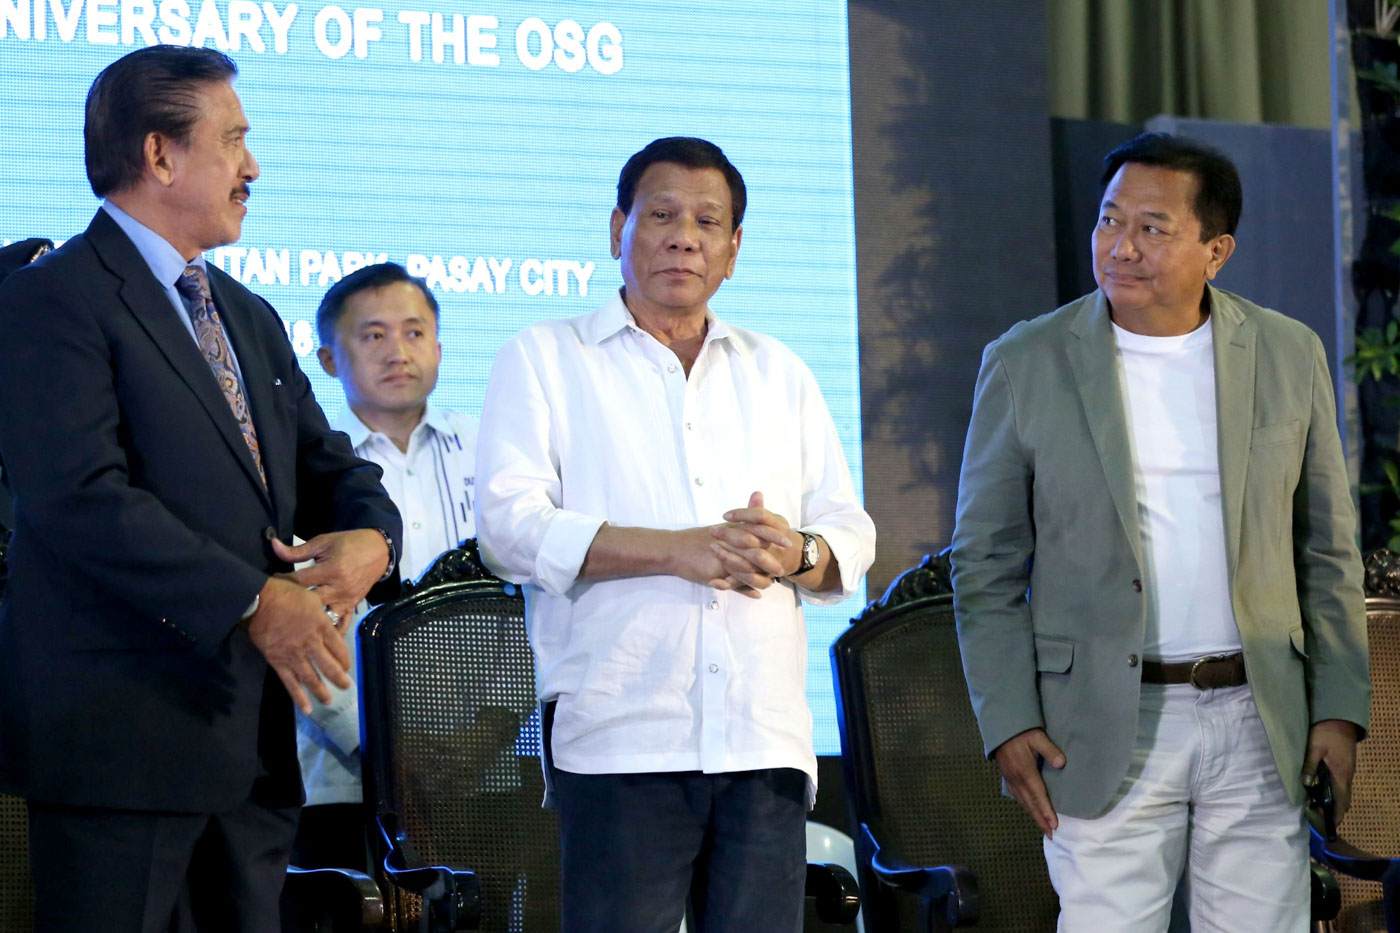 FEDERALISM OVER POLLS? Speaker Pantaleon Alvarez (R) joins President Rodrigo Duterte (middle) and  Senate President Vicente Sotto III (L) at the 117th anniversary celebration of the Office of the Solicitor General on July 3, 2018. File photo by Malacañang